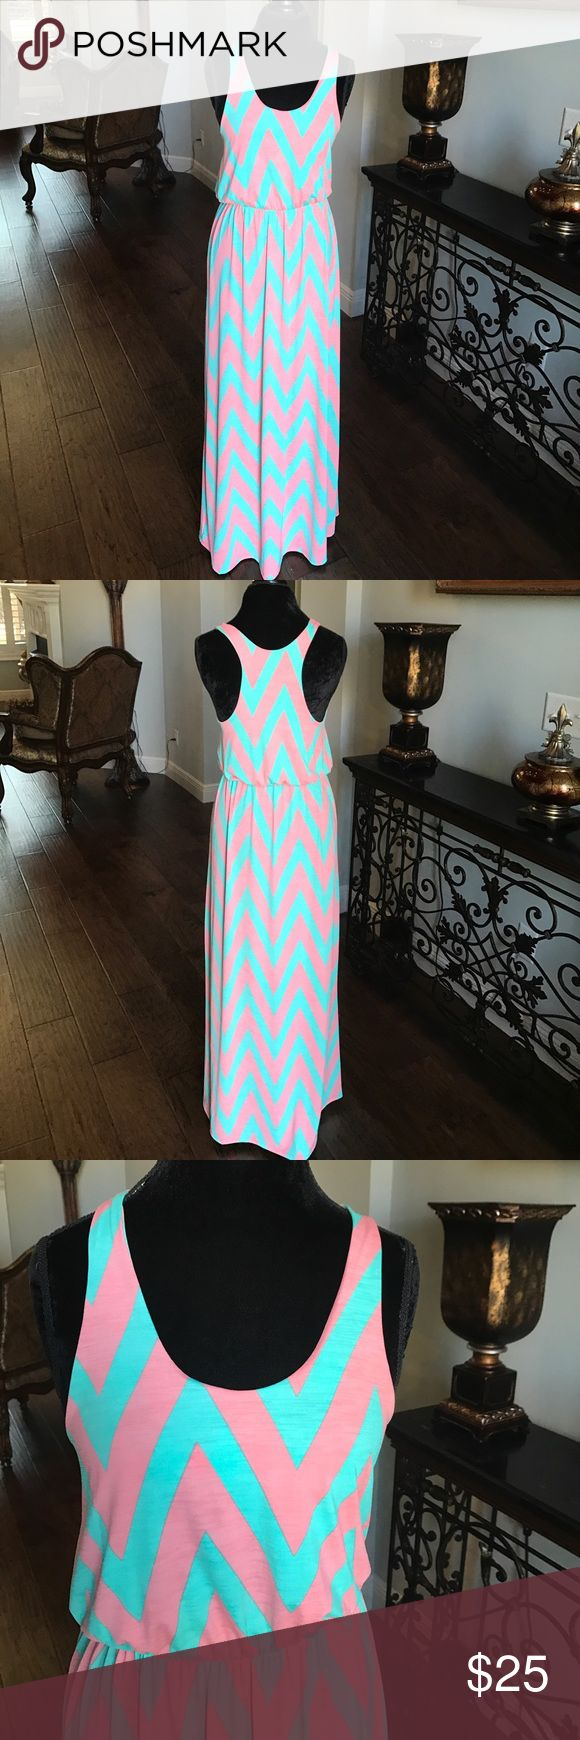 Pink-Blue Striped Maxi Dress Pink and blue chevron maxi is classy, fabulous and perfect for spring. Comfortable racer-back. And everybody knows maxi dresses are the ladies equivalent of sweat pants. Never worn. Excellent condition. Fascination Dresses Maxi